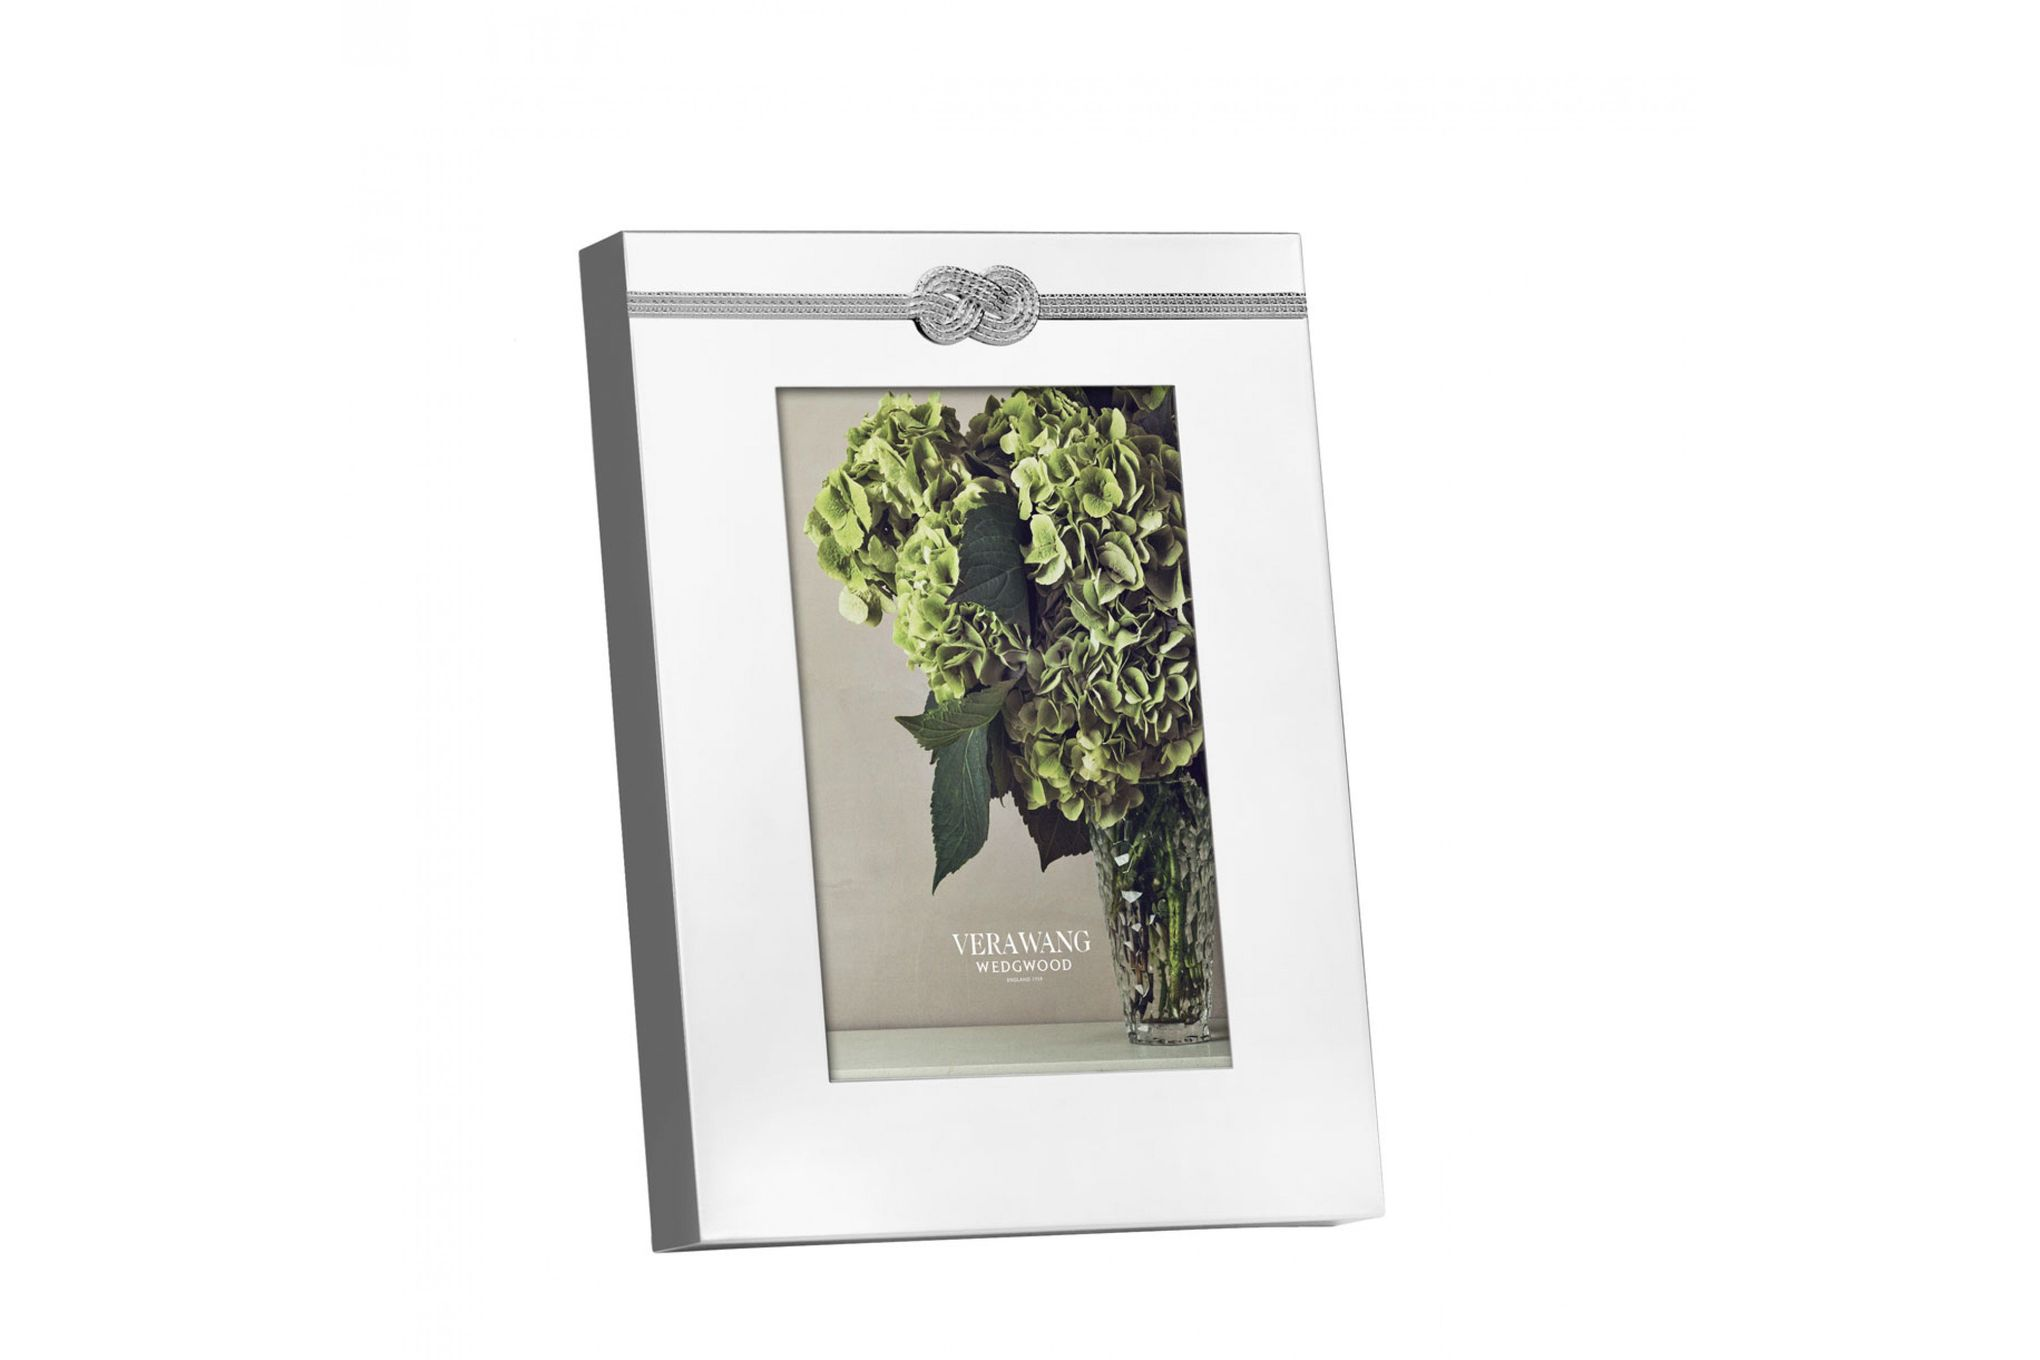 """Vera Wang for Wedgwood Gifts & Accessories Photo Frame Infinity 4 x 6"""" thumb 1"""